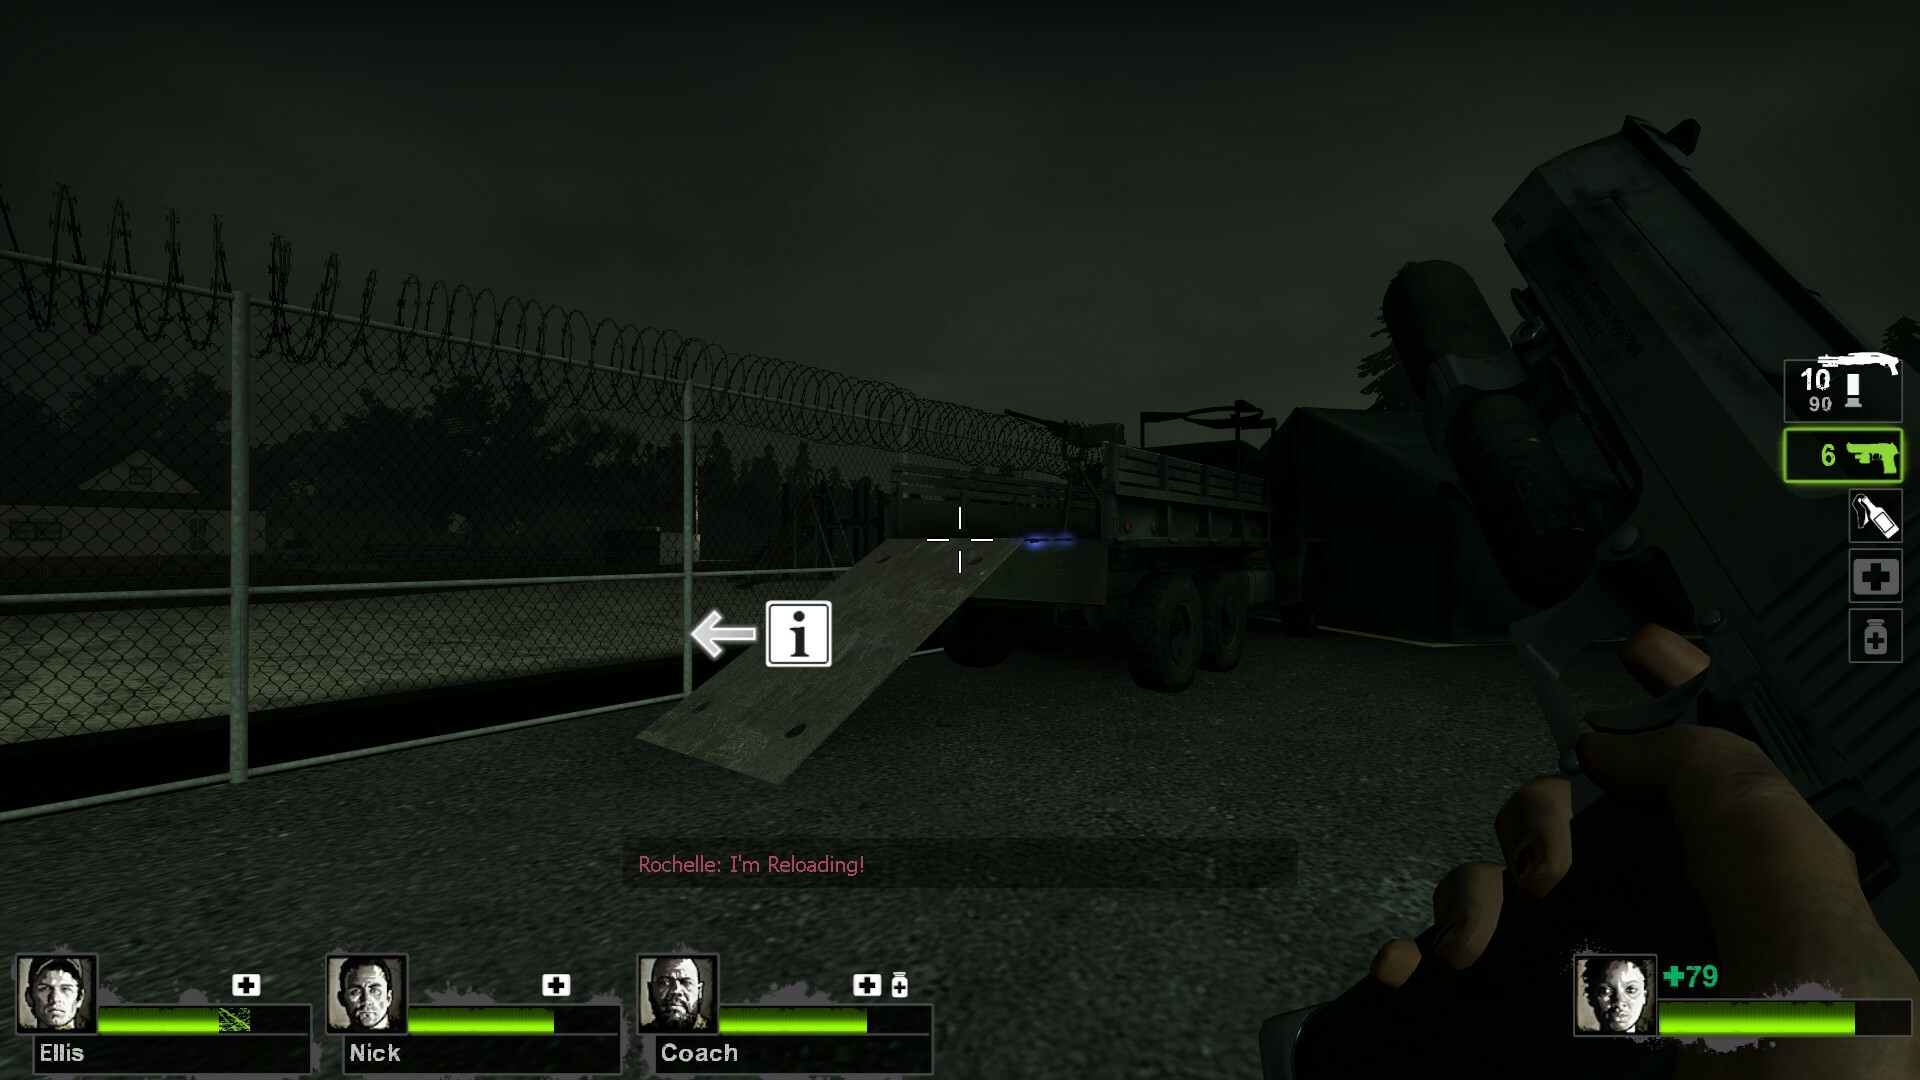 Players can use this mounted machine gun to cause the truck to explode, allowing players to move past the barricade.